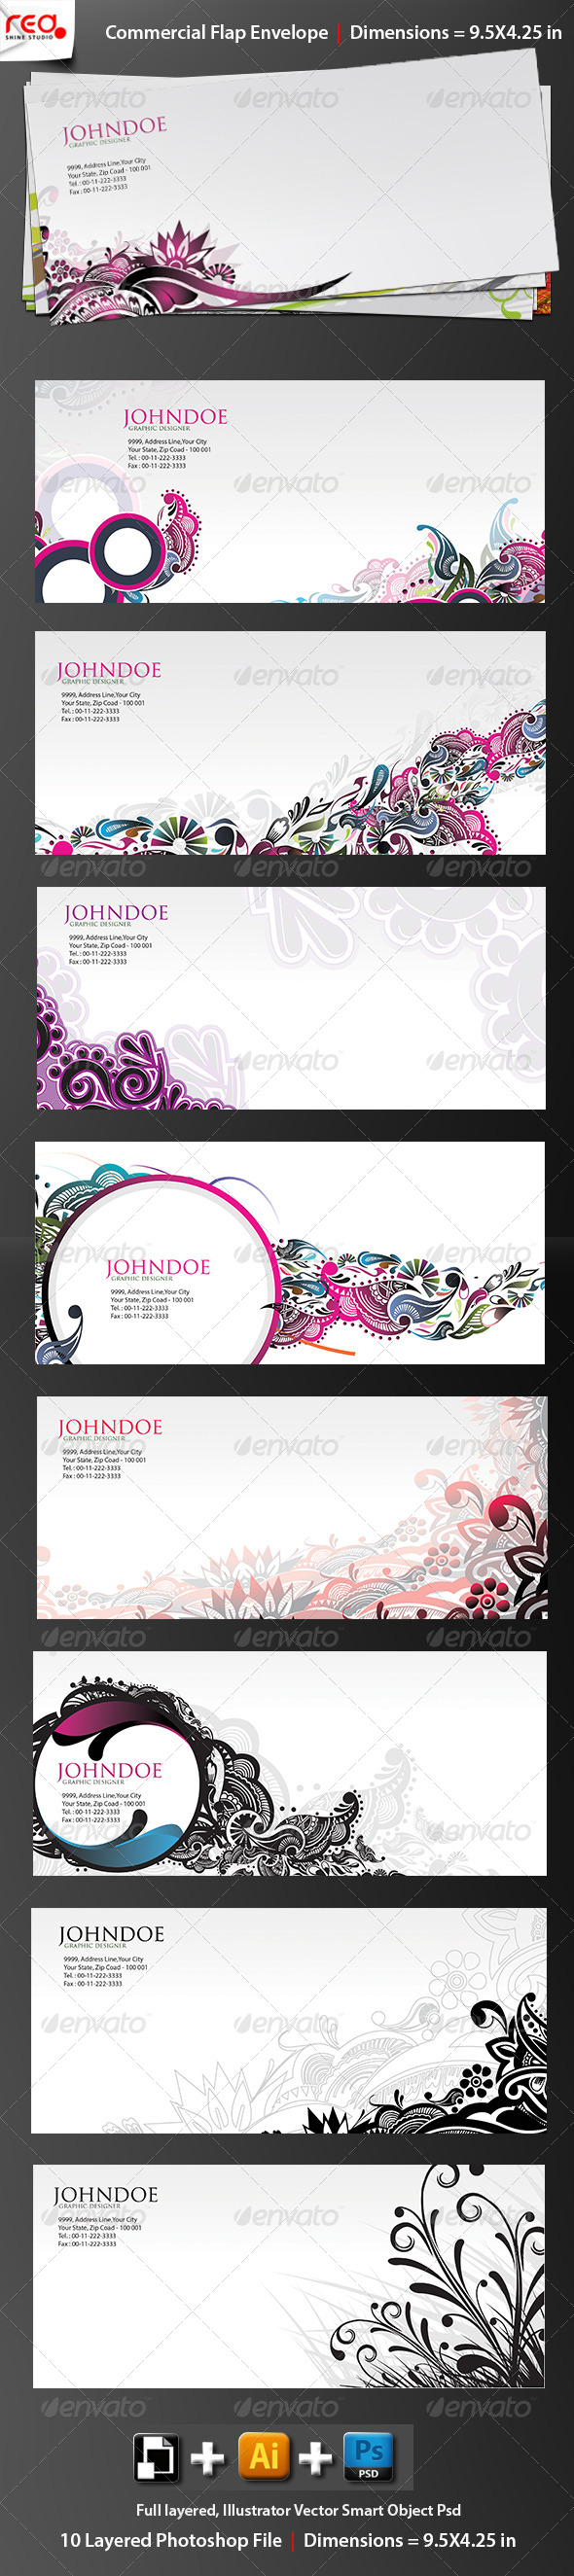 Print Ready Commercial Bussiness Envelope 2 - Stationery Print Templates